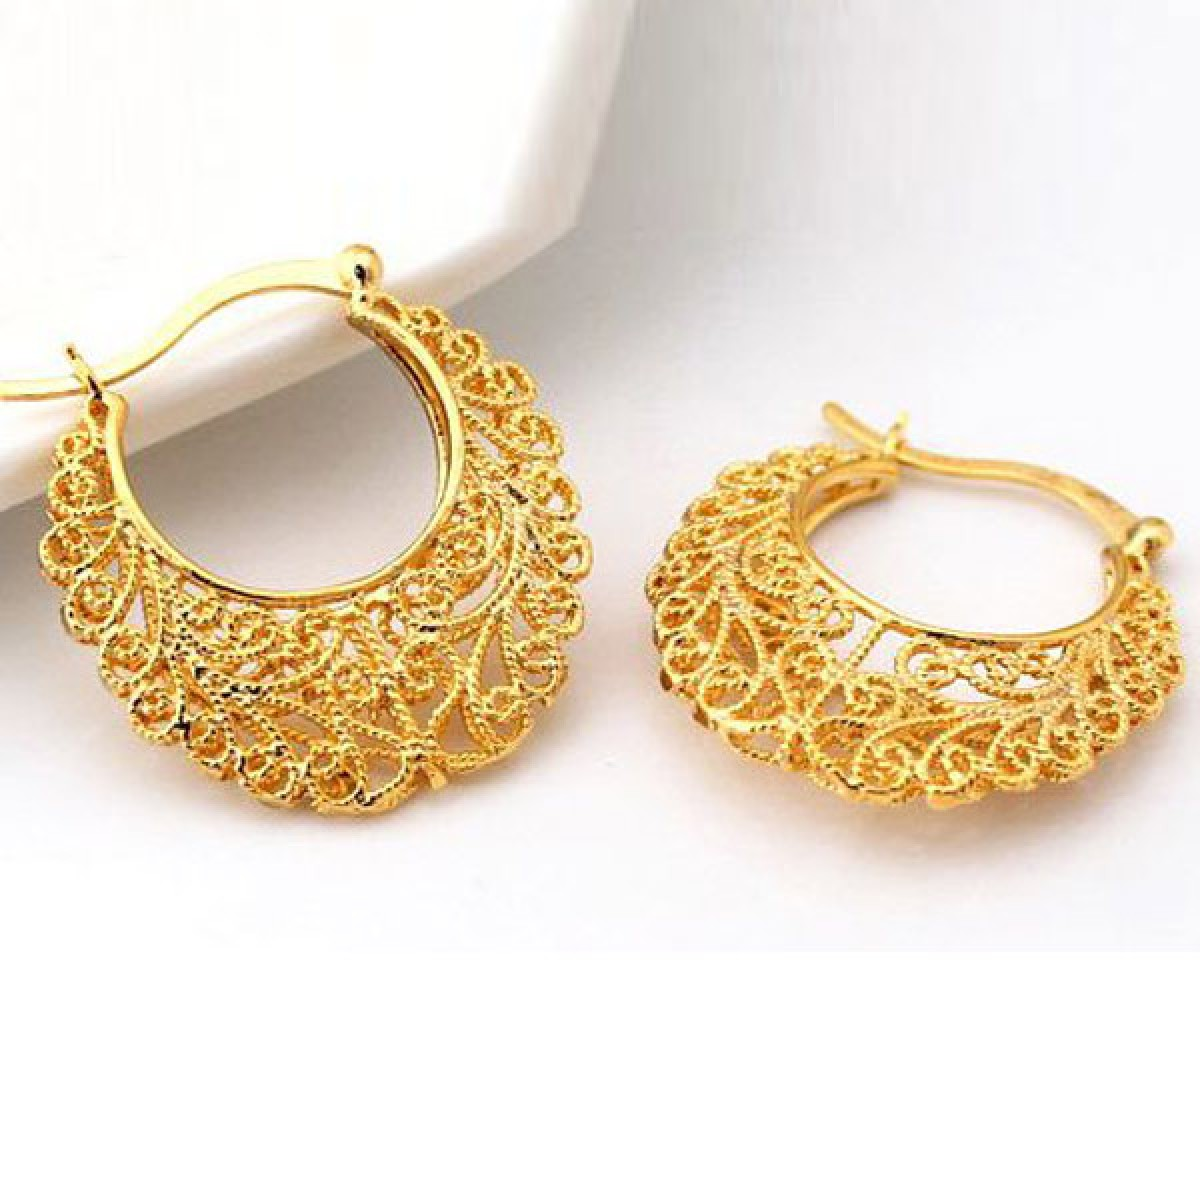 SecretShop24.com | 18k Real Gold Plated Excellent Craft Hollow ...